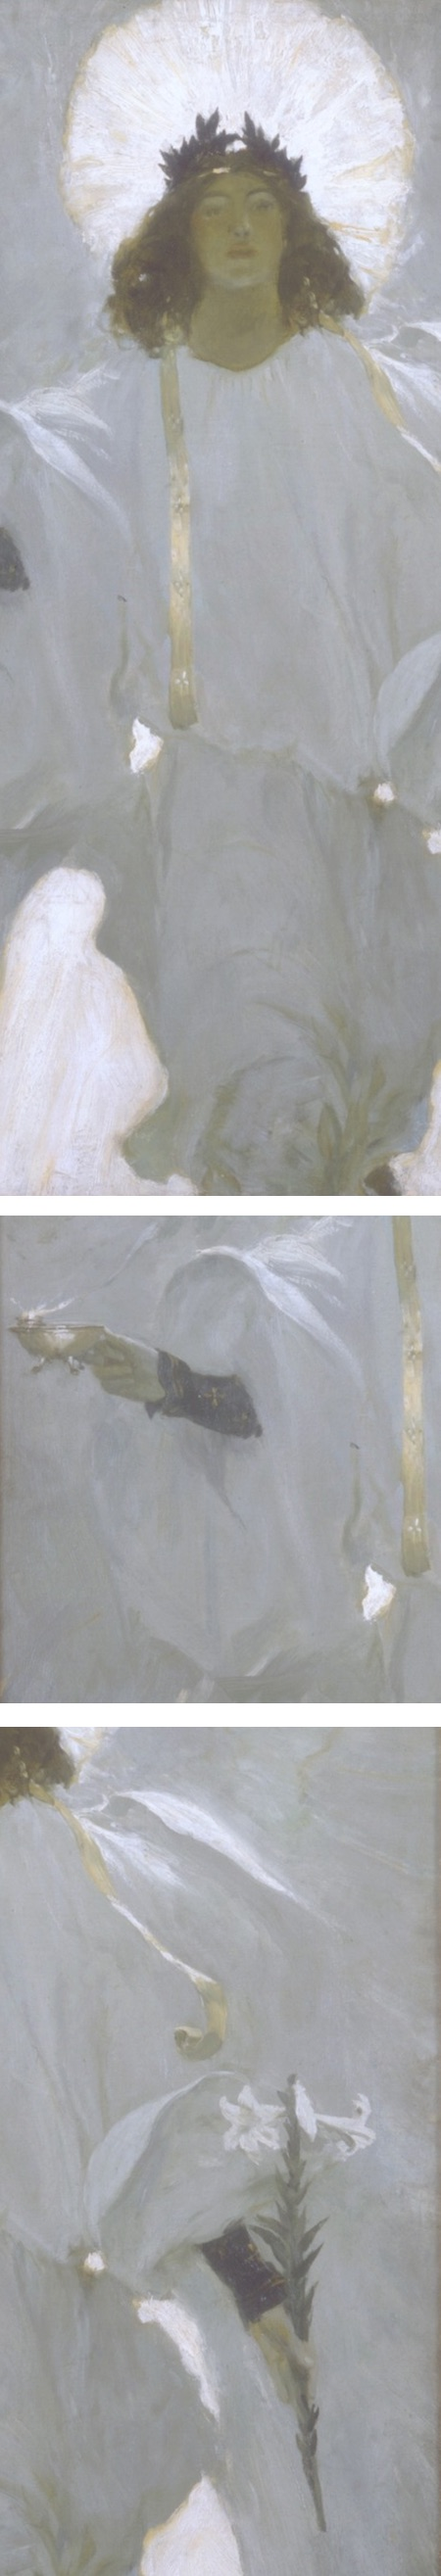 Why seek ye the living in a place of the dead?, Howard Pyle, illustration (details)